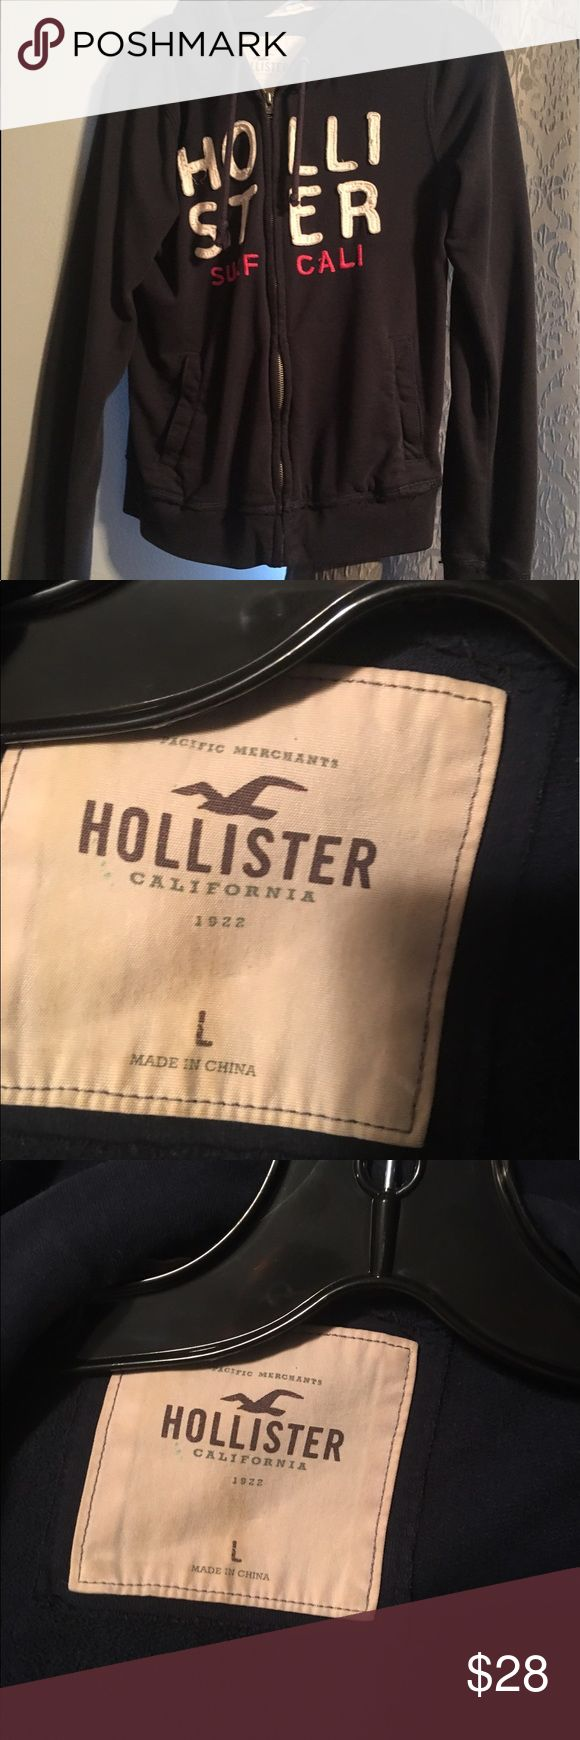 Zip up Hollister jacket. Navy blue. This jacket is a large, but it honestly fits like a small. I'm a size 2 and it fits me perfectly except the sleeves are a little long. It's been worn some. There's some discoloration on the tag. Hollister Jackets & Coats